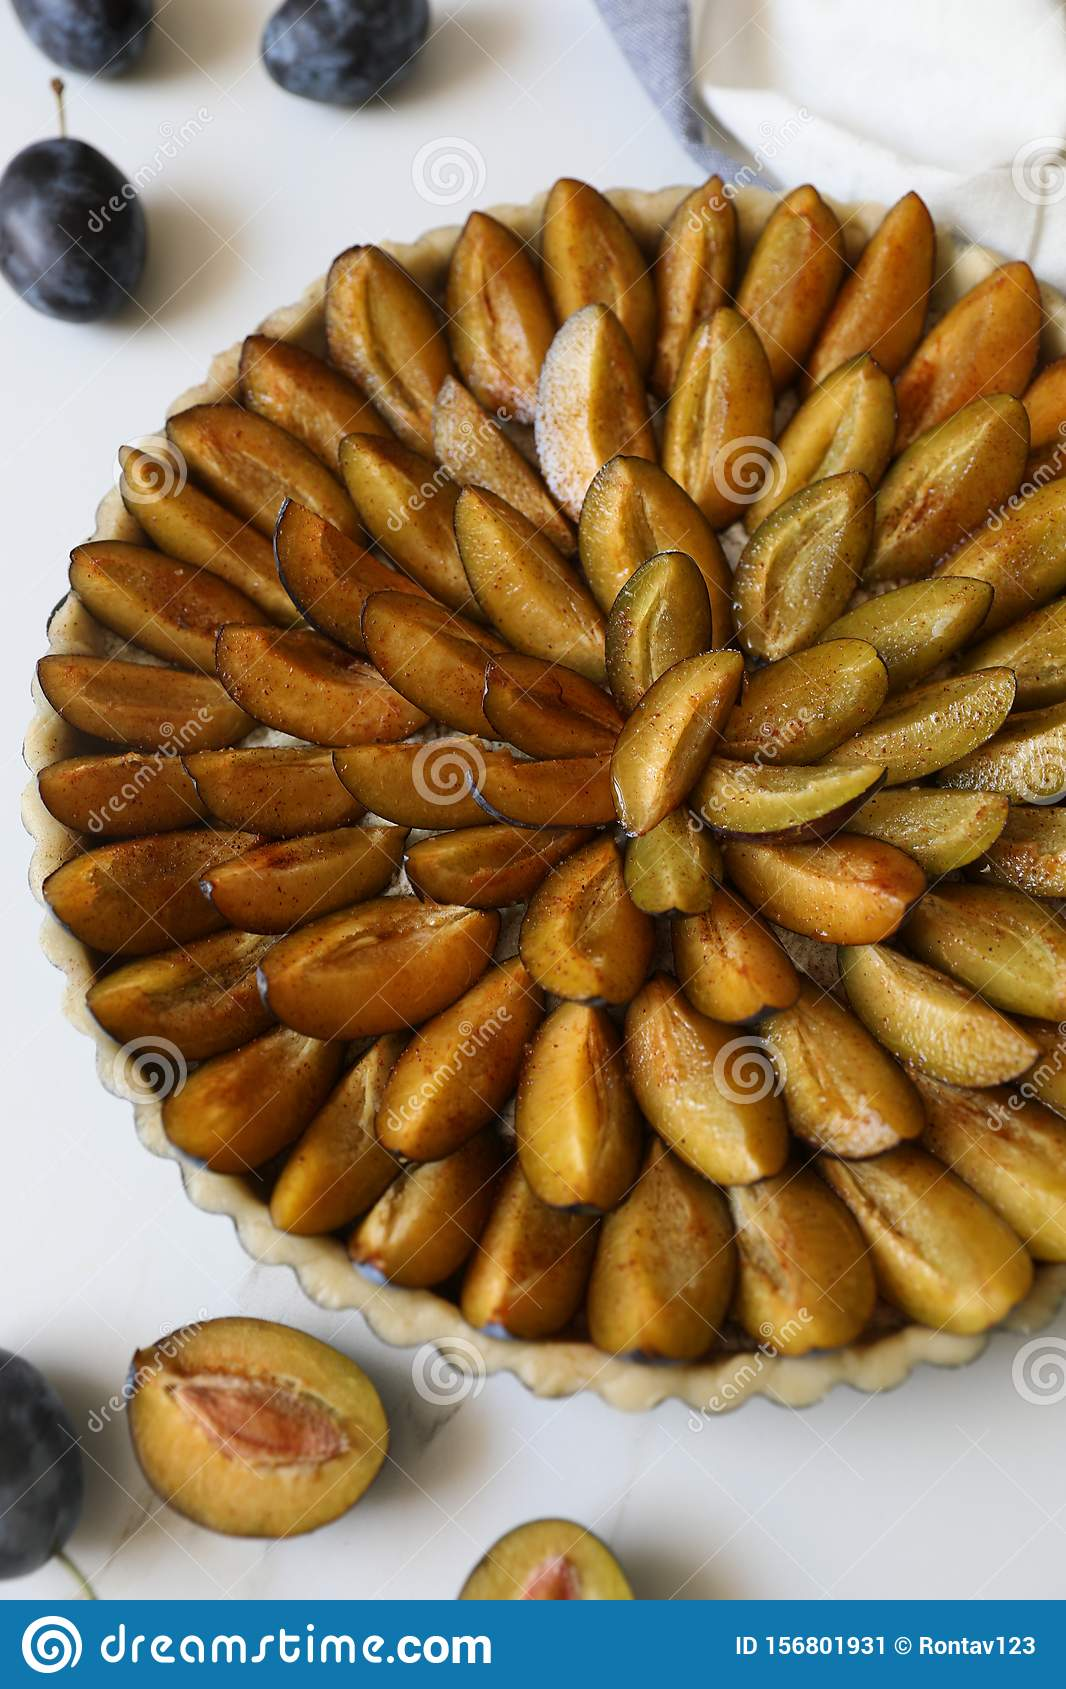 Top view of delicious Traditional Alsatian Plum tart French: Tarte aux quetsches alsacienne